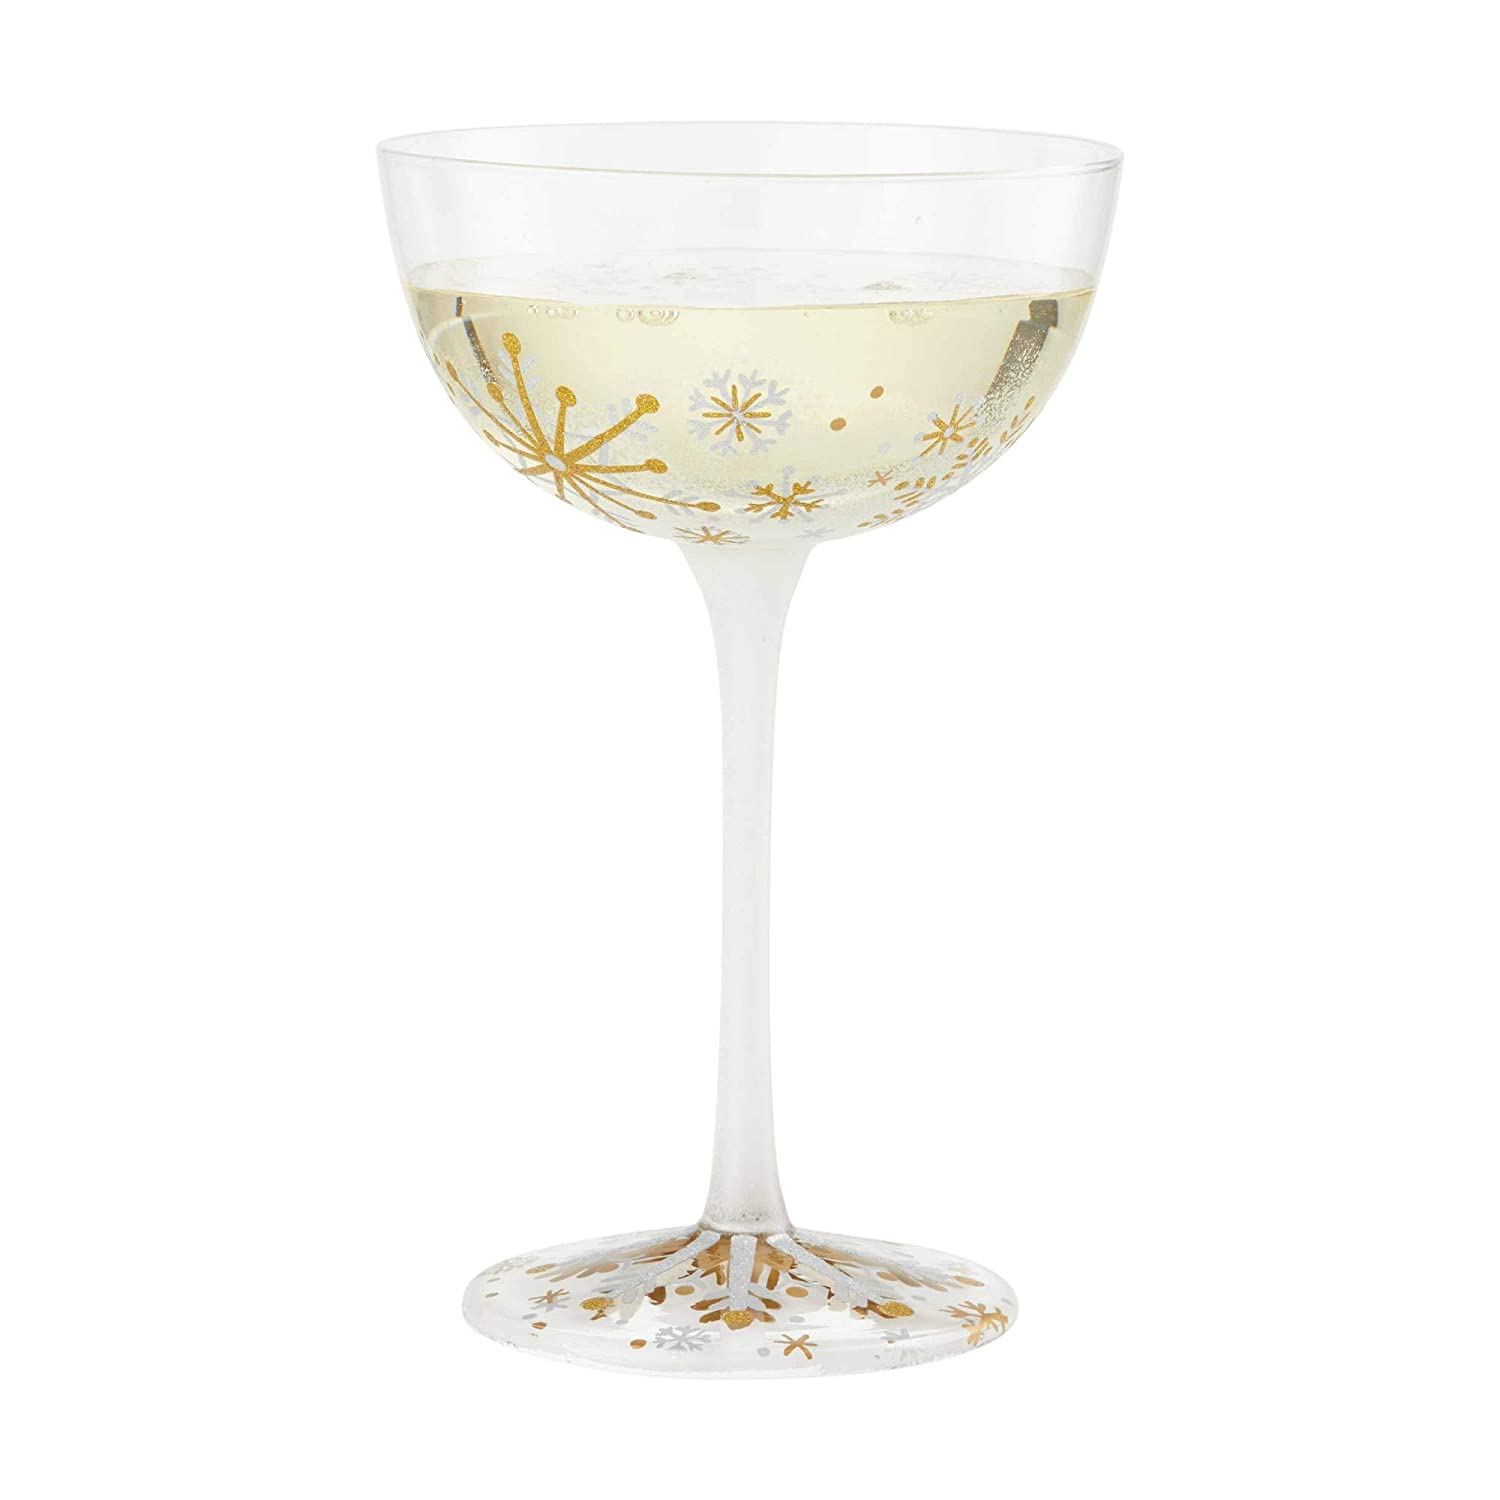 Enesco 6004439 Designs by Lolita First Snowflakes Cocktail Coupe Glass 9 Ounce Multicolor